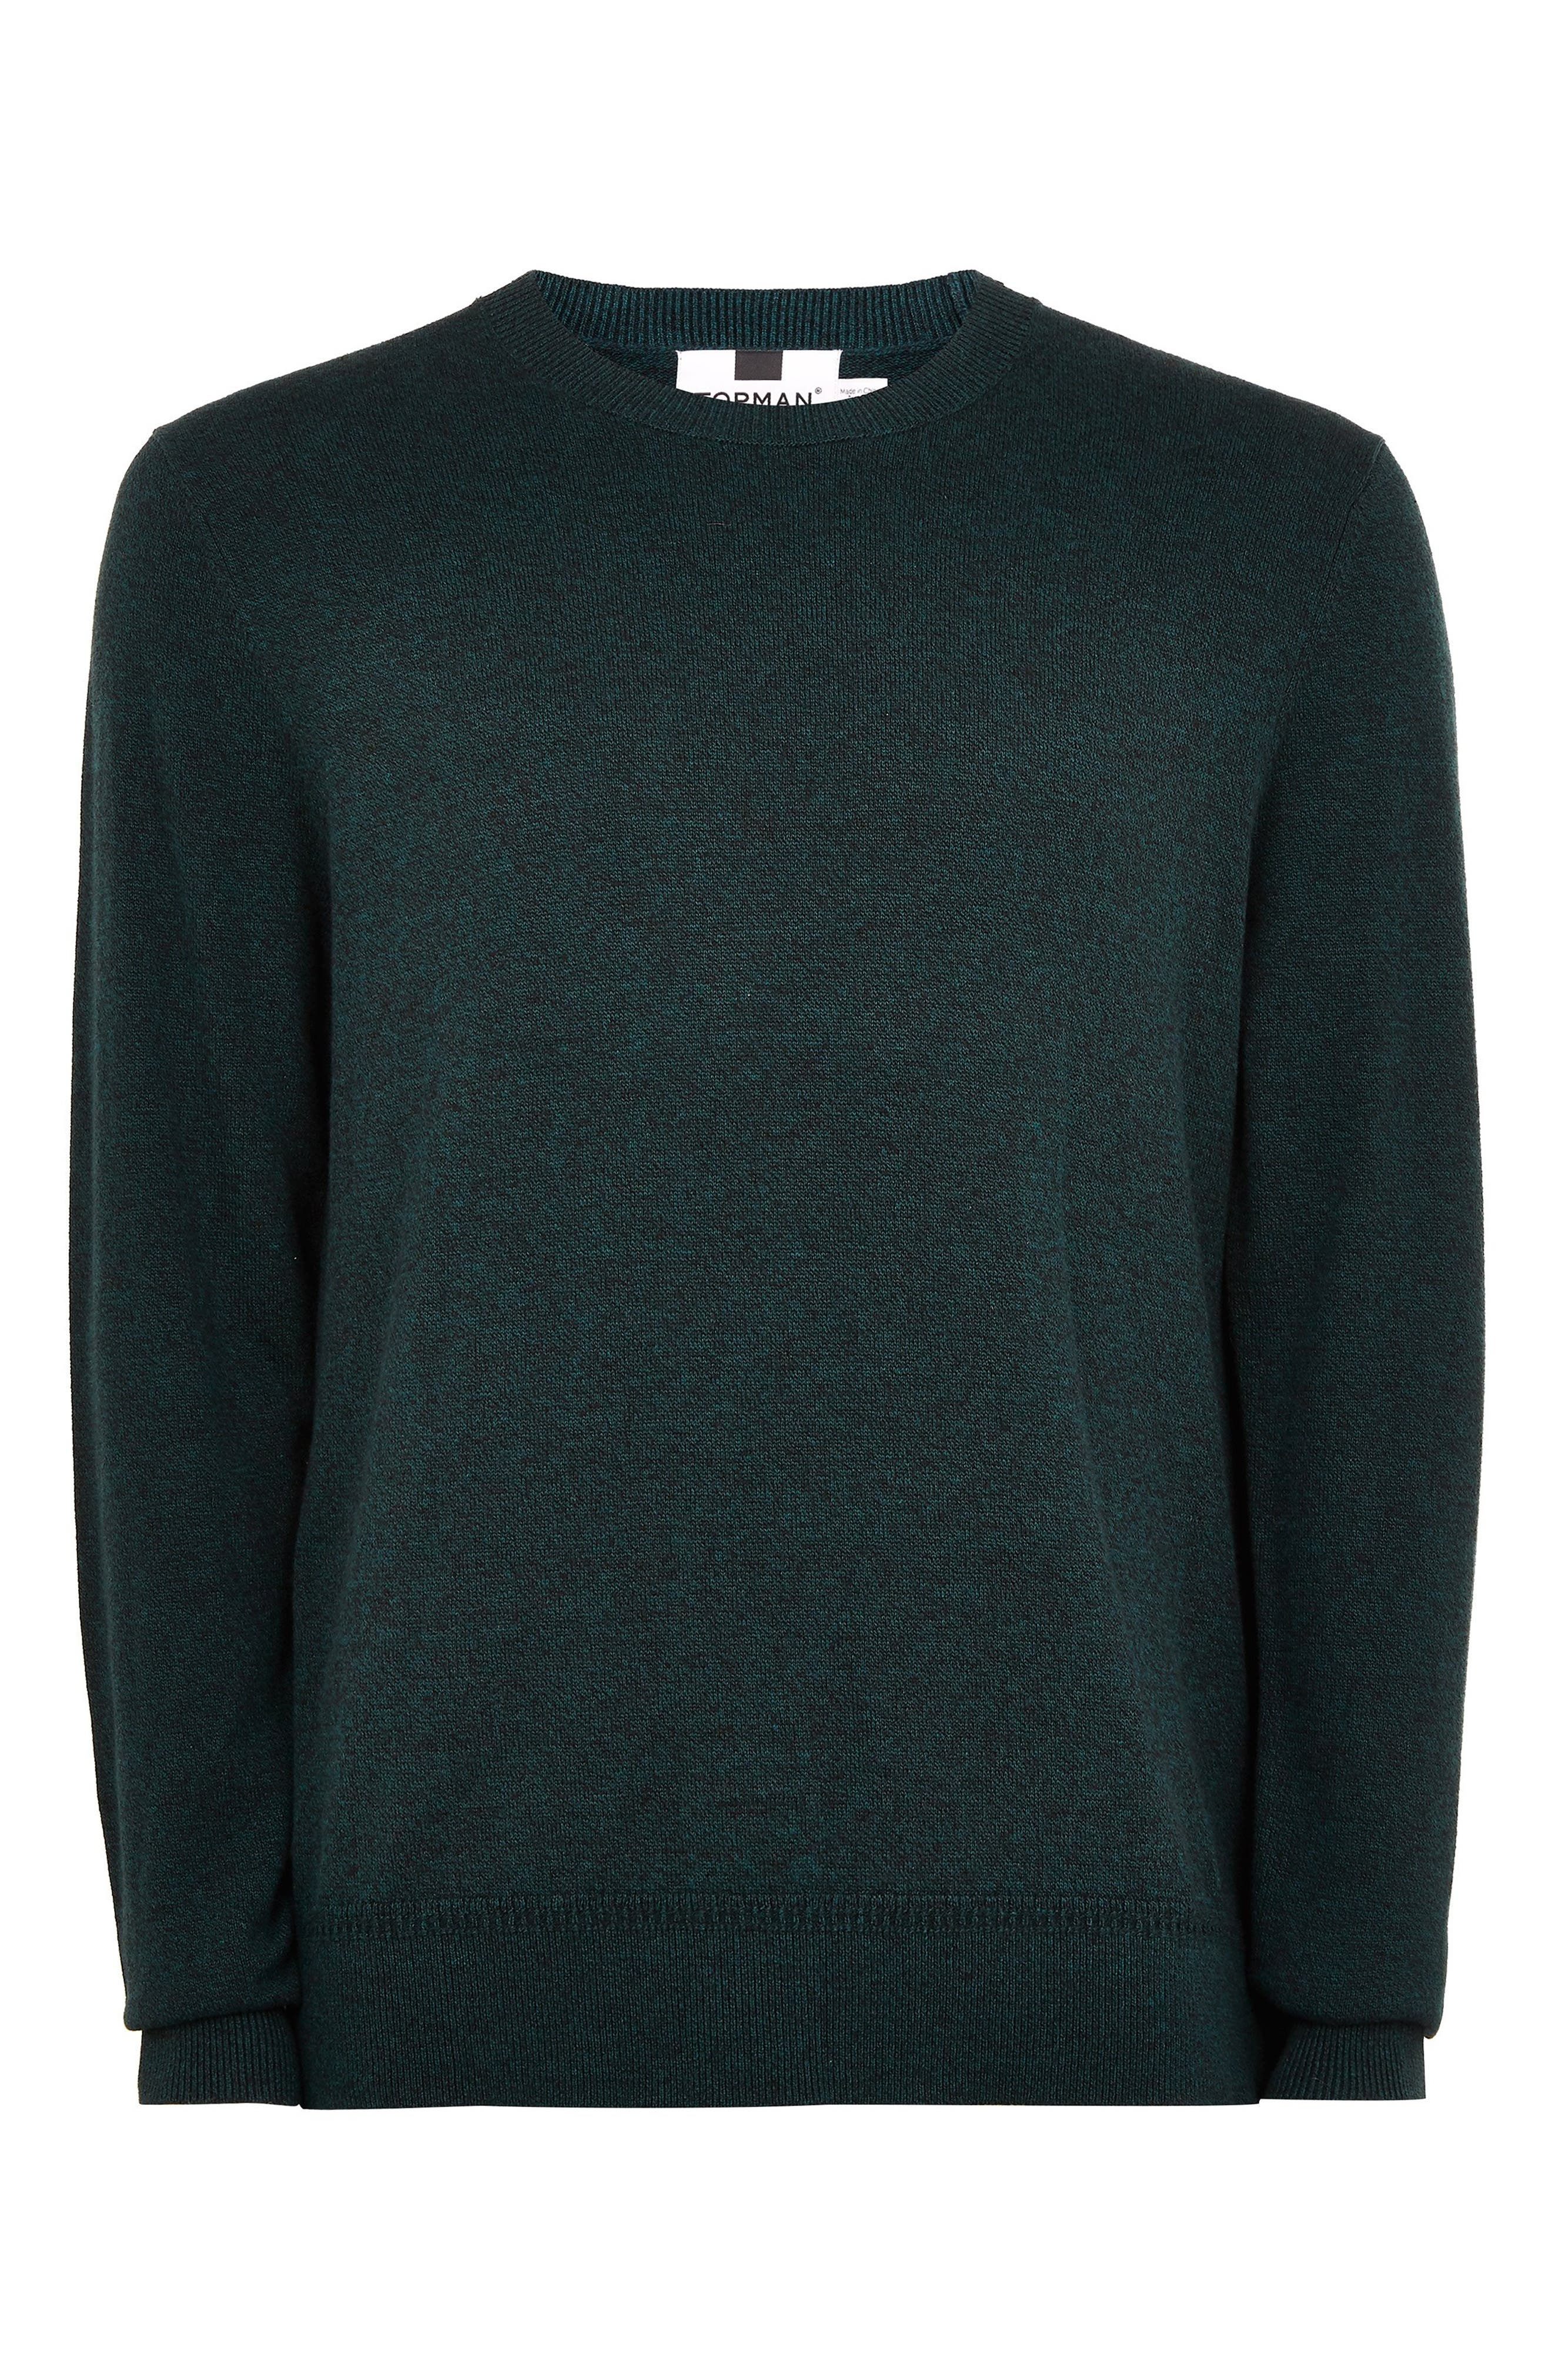 Marl Crewneck Sweater,                             Alternate thumbnail 4, color,                             GREEN